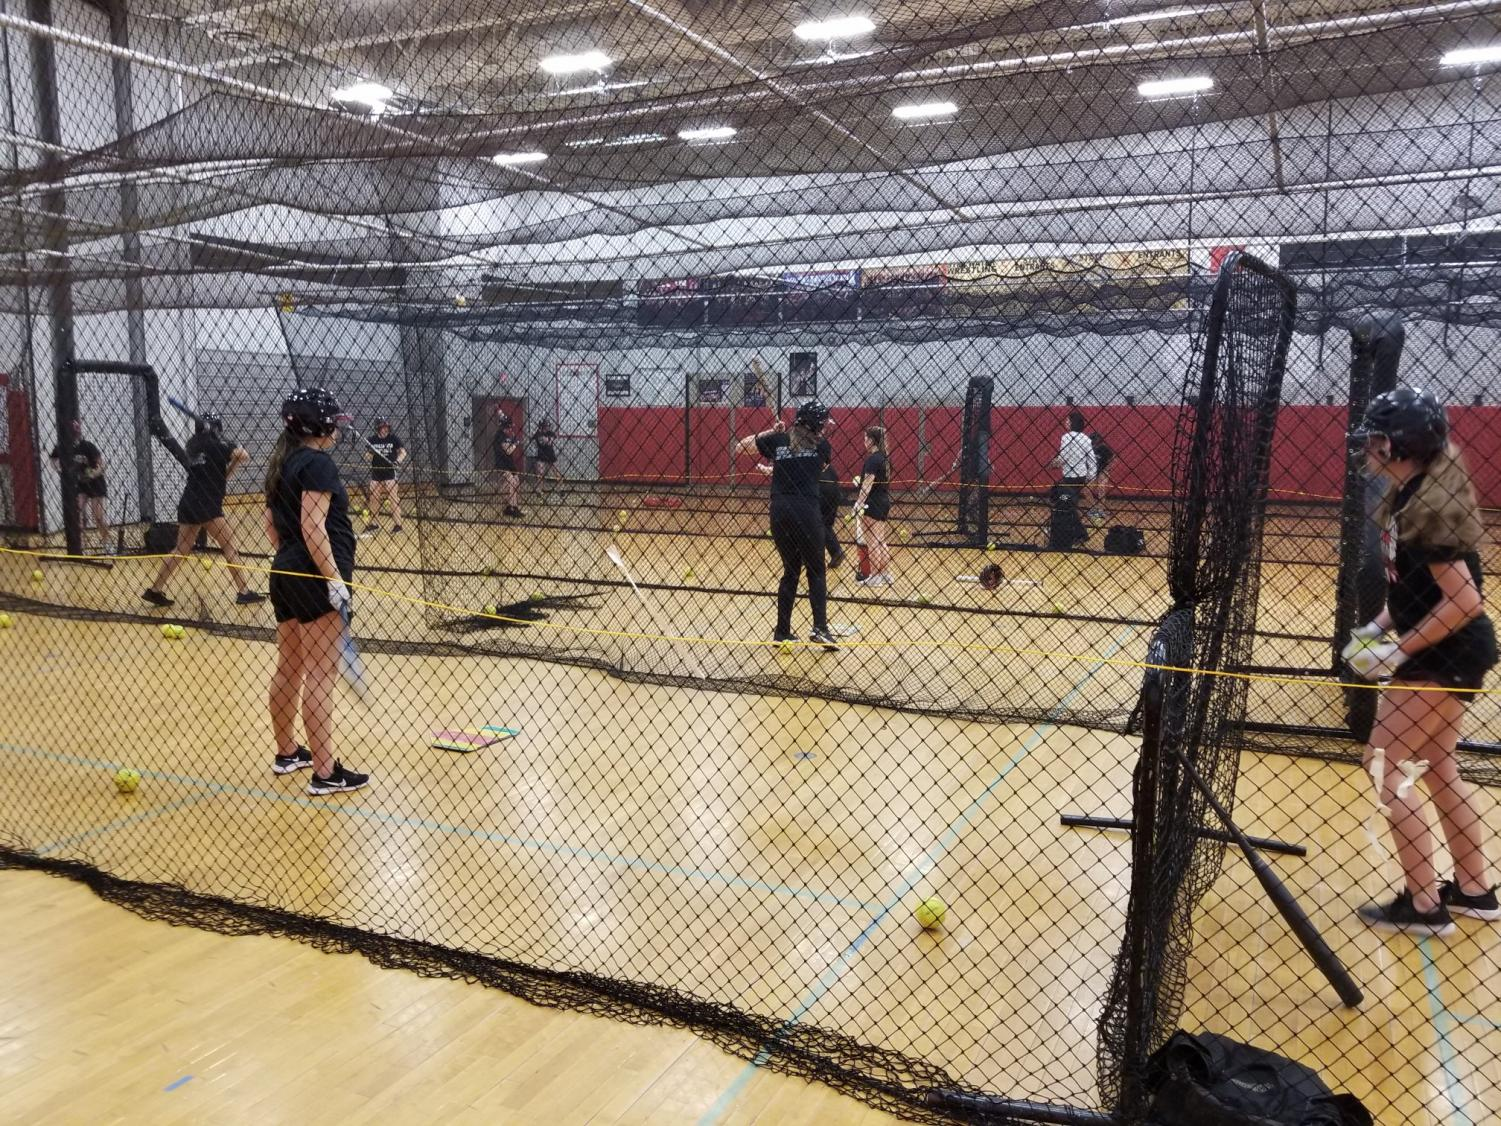 The girls softball team starts their season with indoor practice.